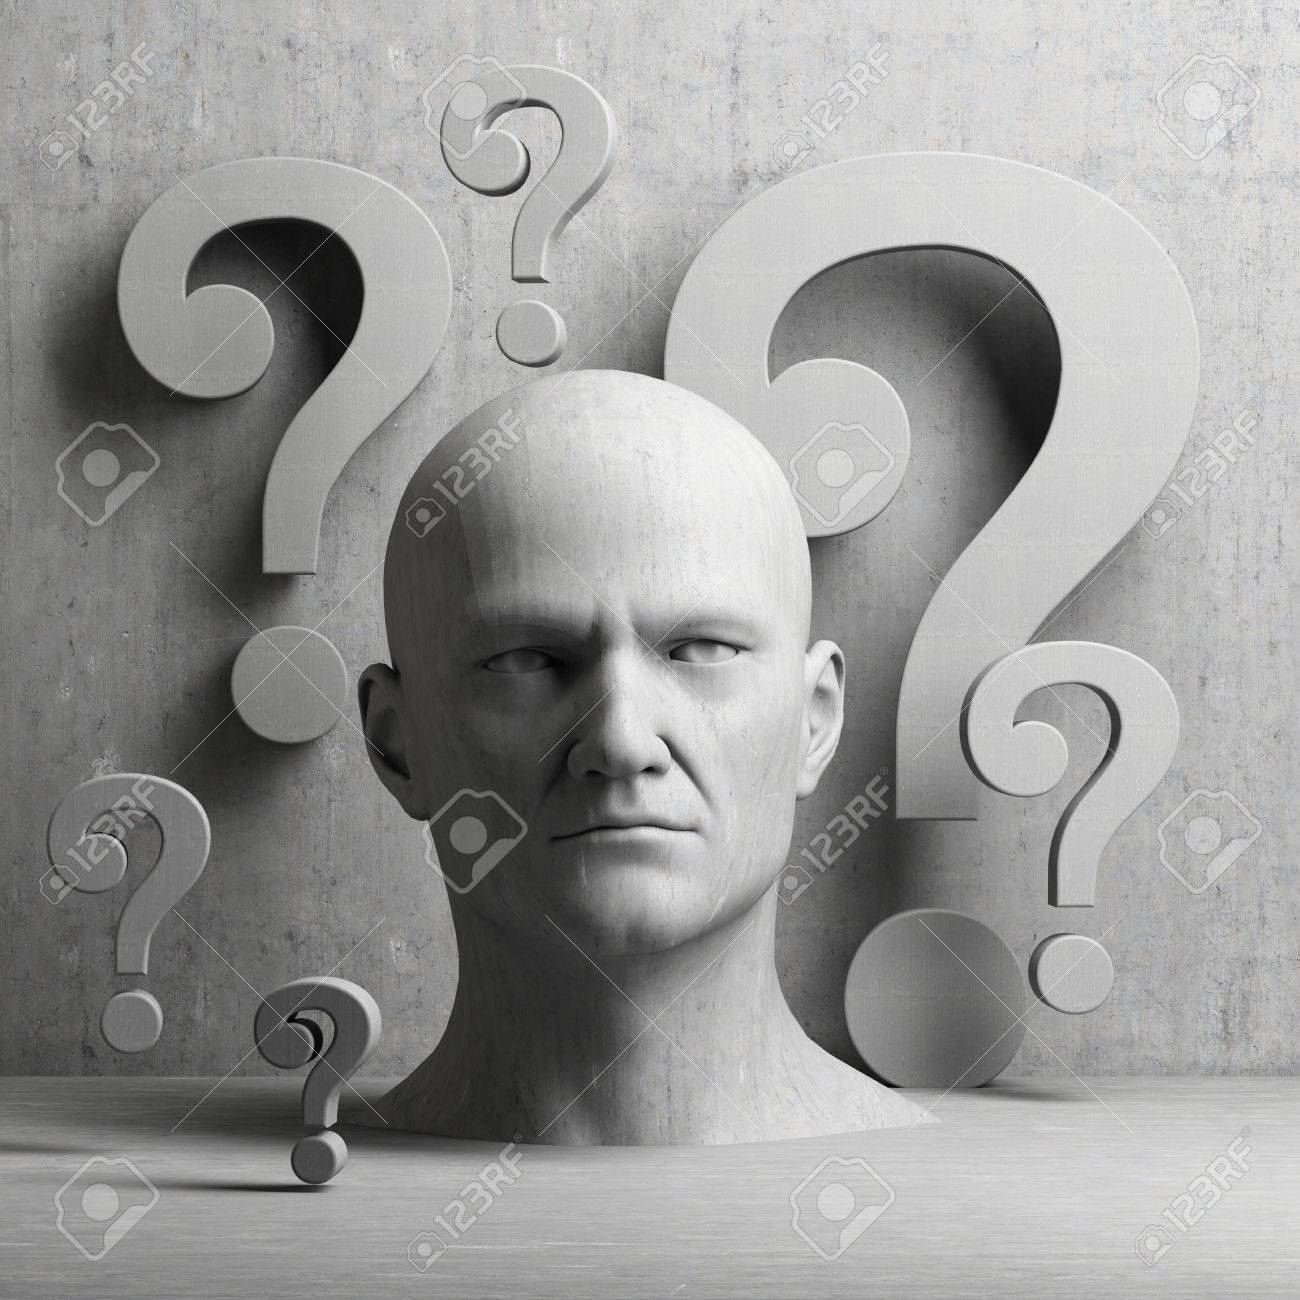 Thinking man statue with question mark on gray background to illustrate learning, education, testing, quizzing, creativity and imagination - 54691040